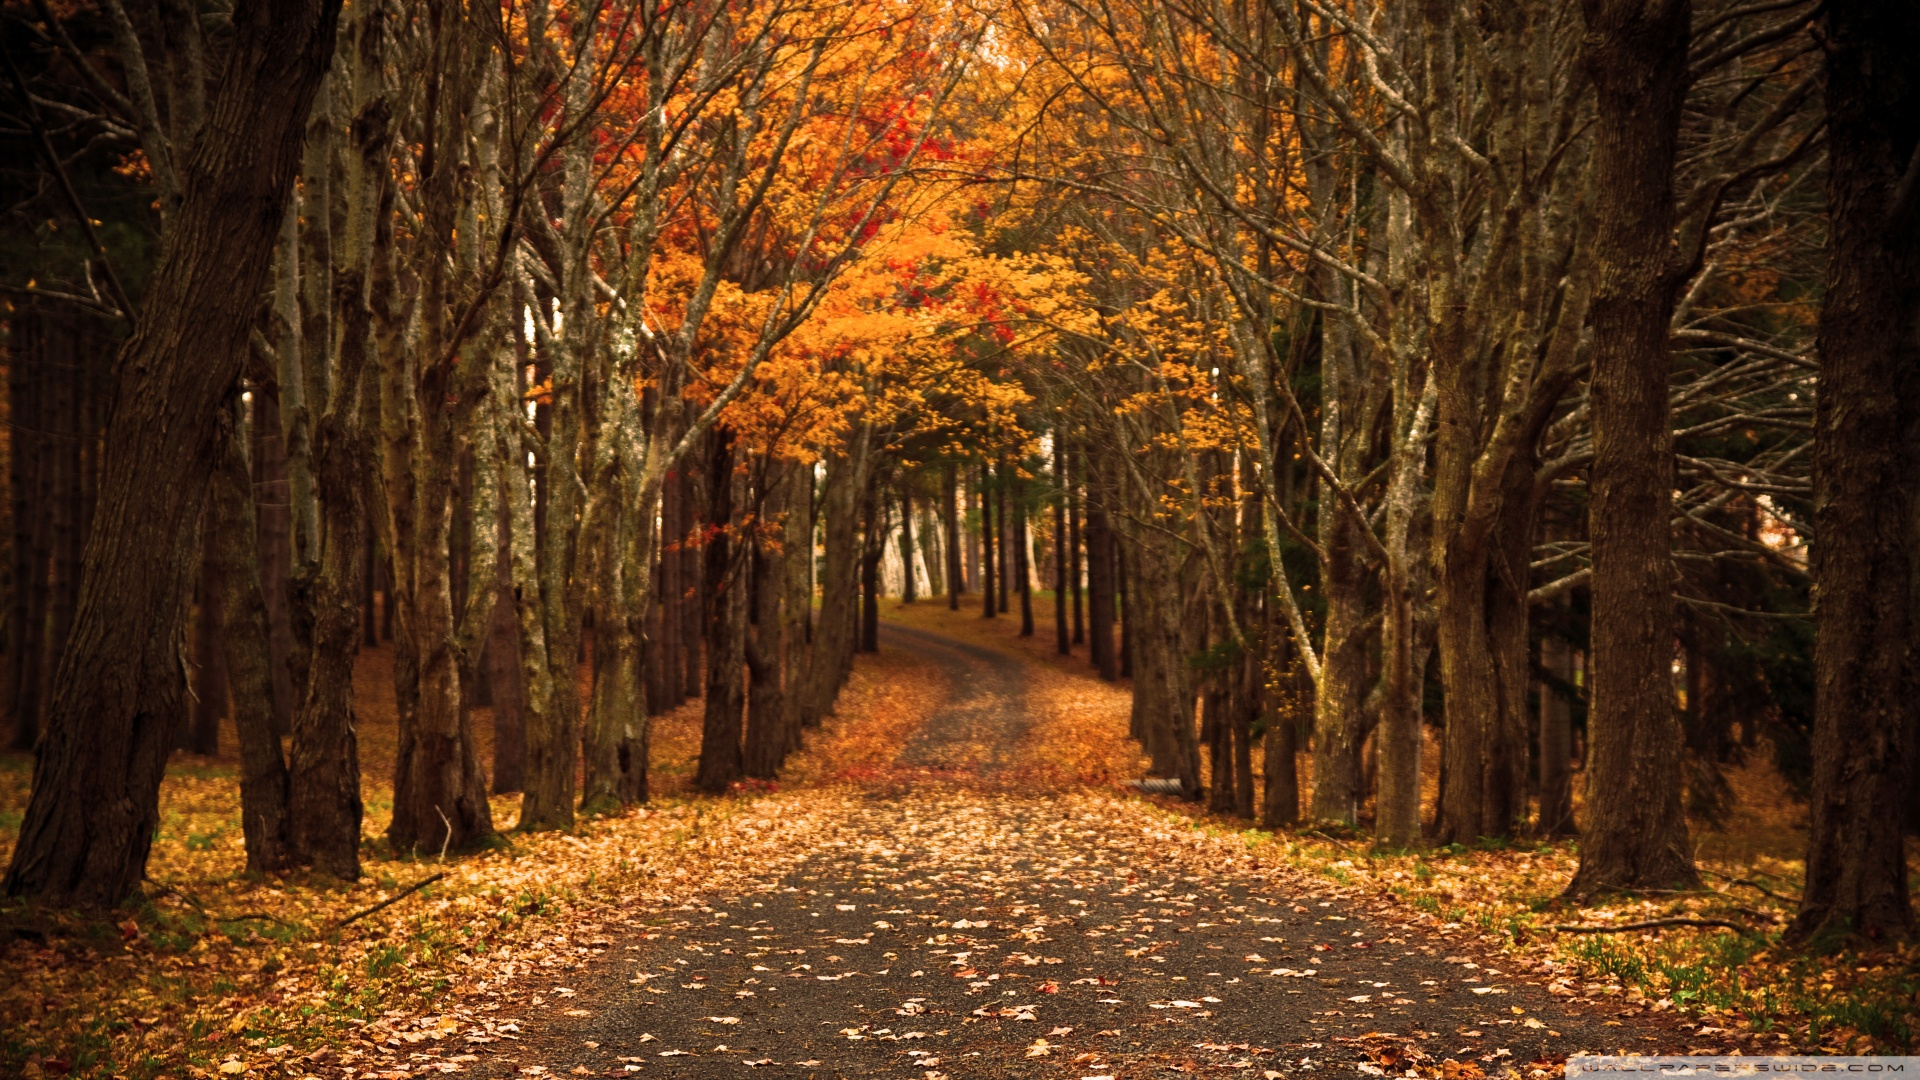 autumn hd wallpapers 1080p - wallpapersafari